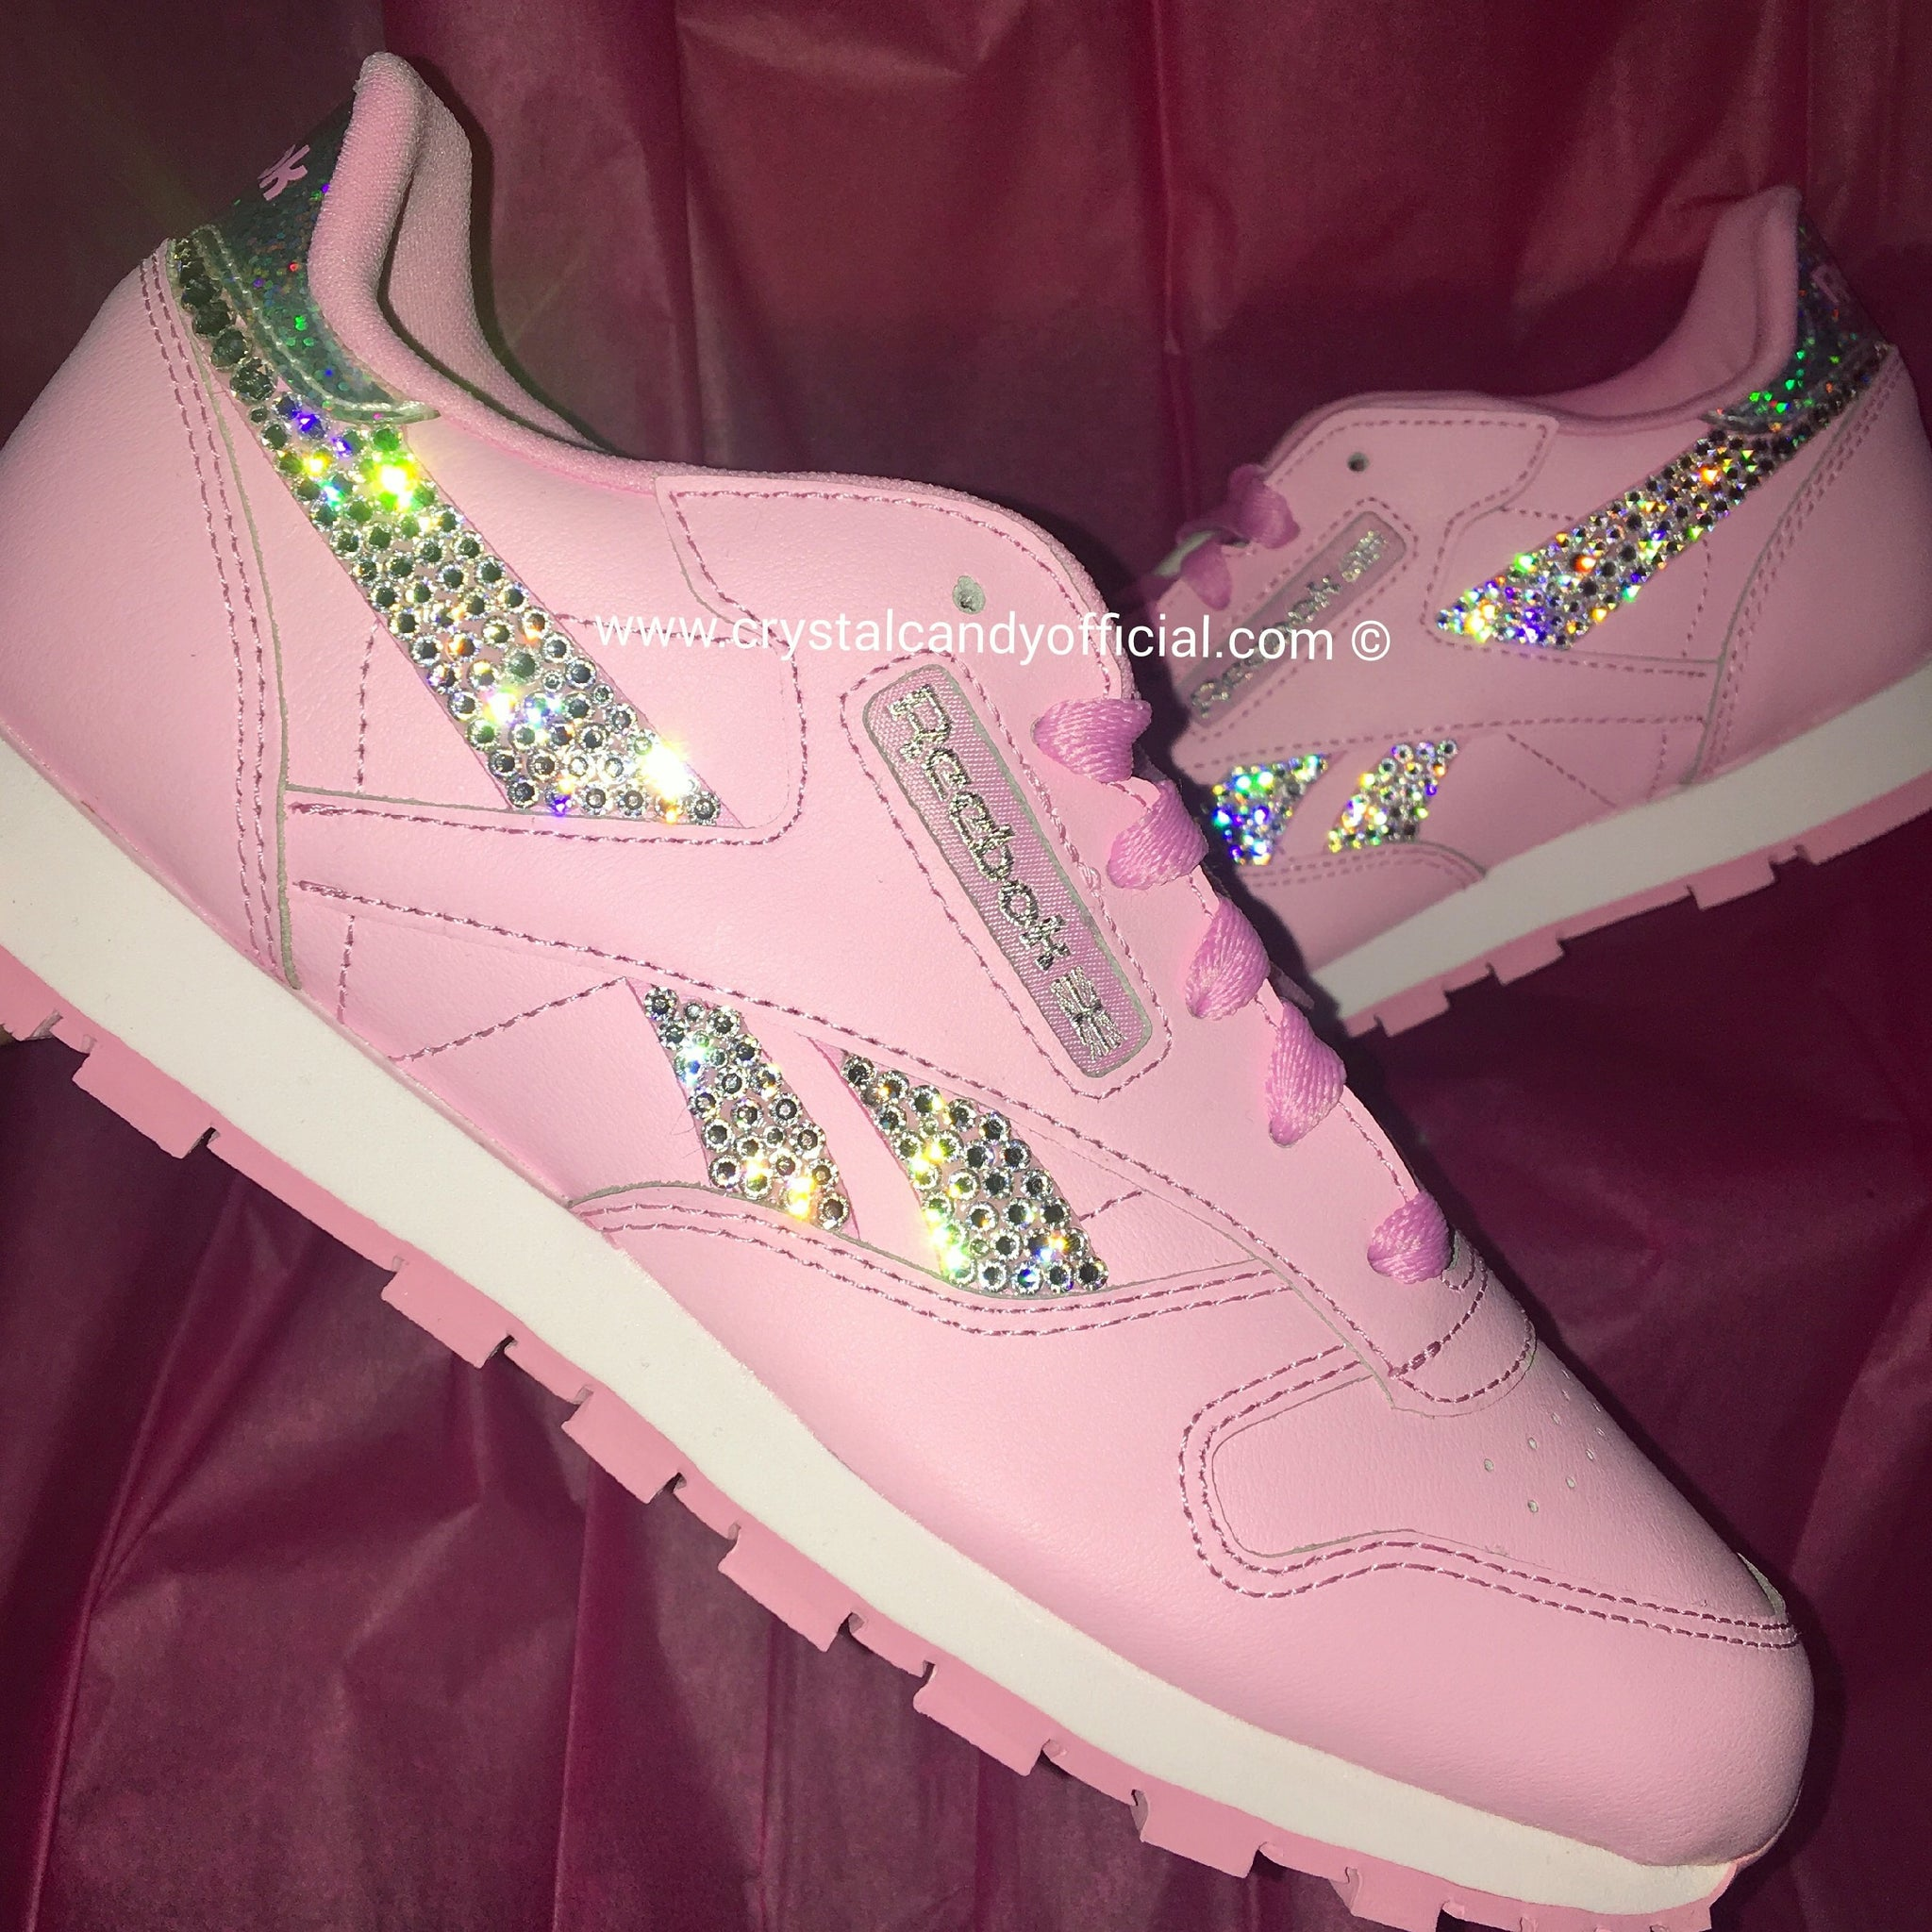 Crystal Reebok Classic in Baby Pink